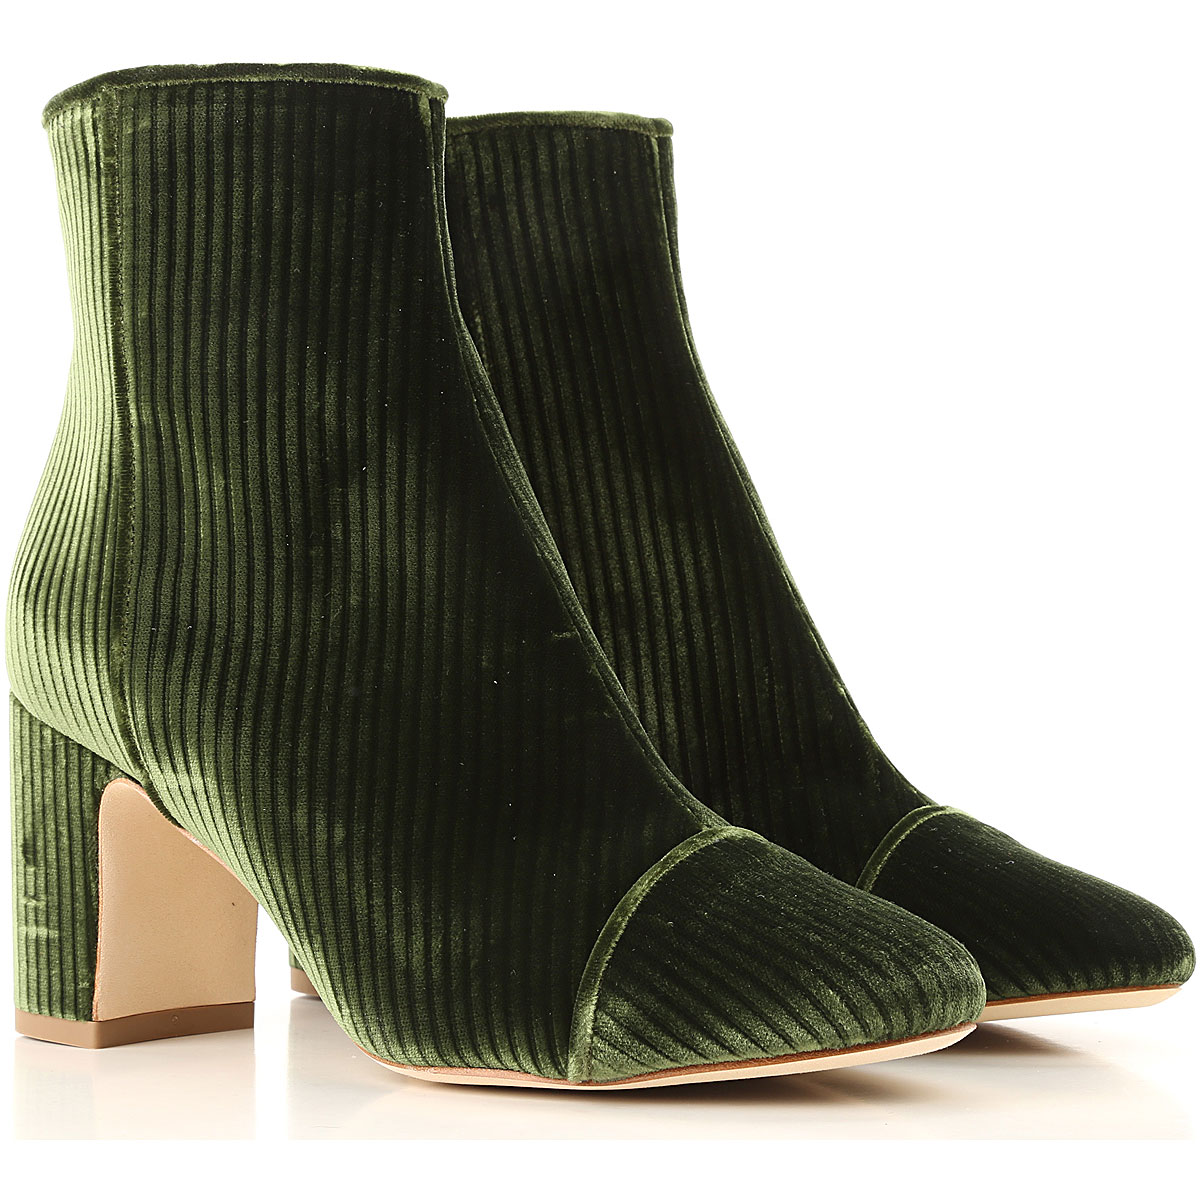 Image of Polly Plume Boots for Women, Booties, Green, Velvet, 2017, 10 6 7 8 9